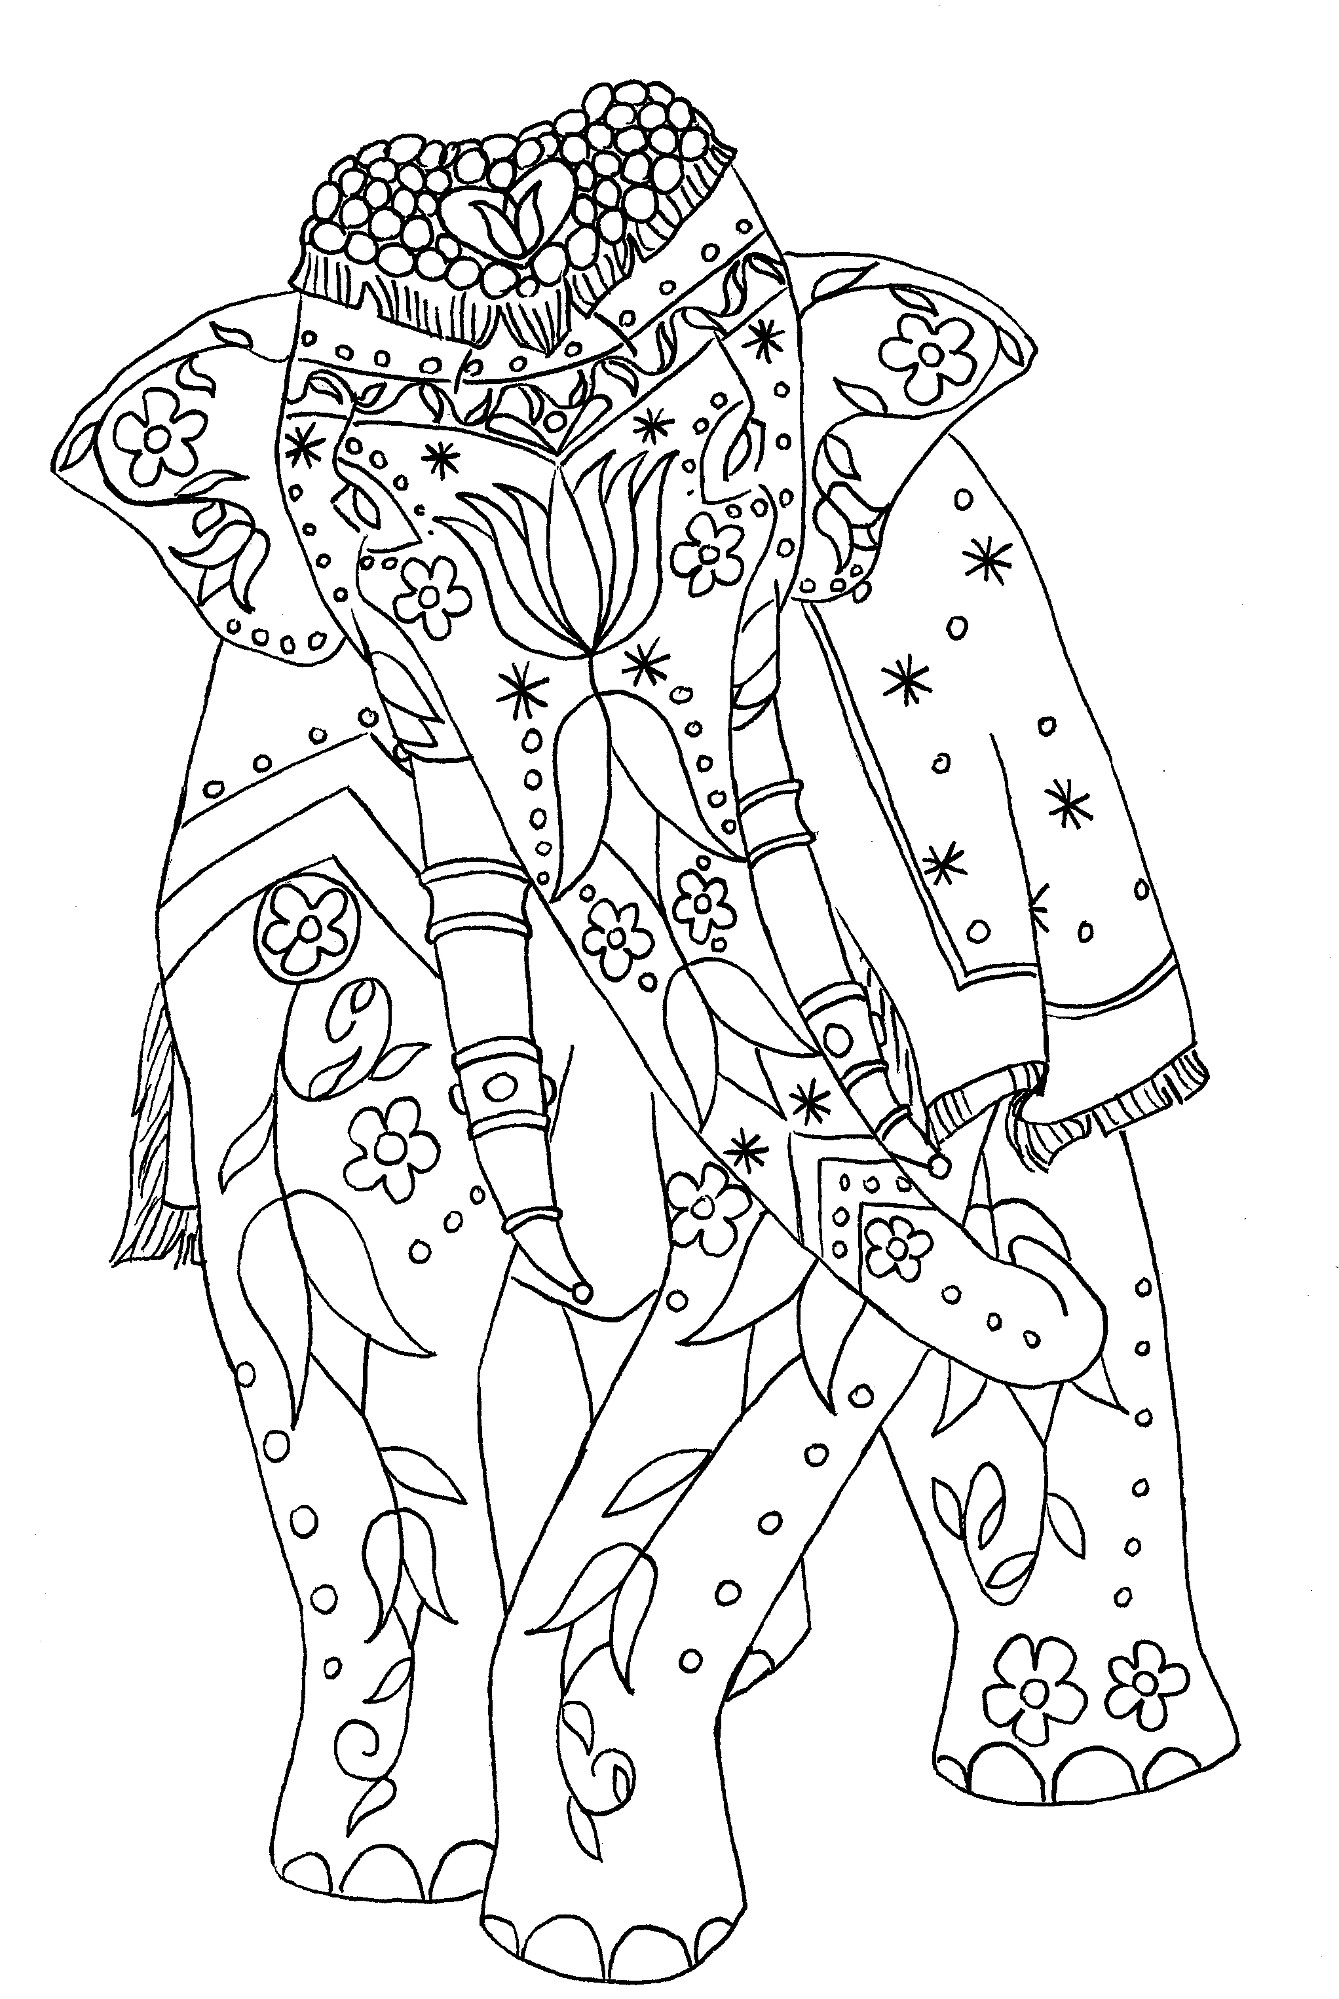 coloring pages for adults printable free printable abstract coloring pages for adults for adults printable pages coloring